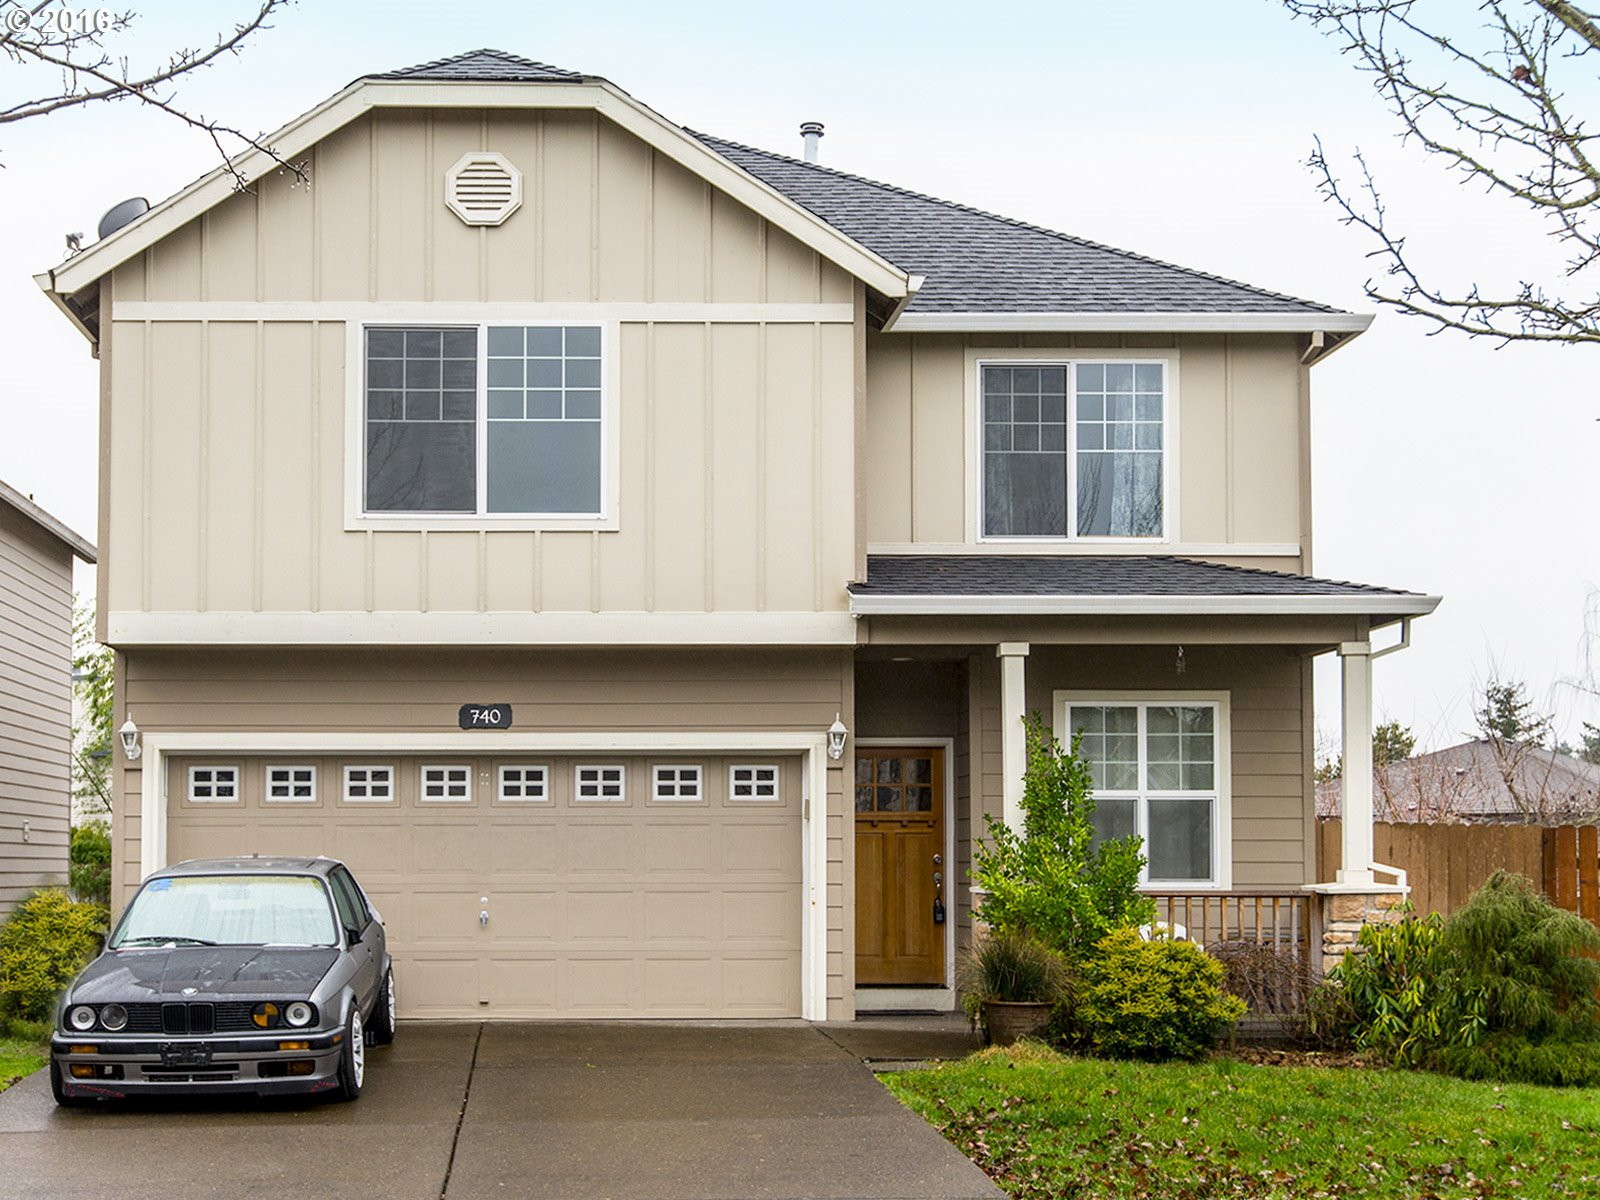 740 NW 180th Ave, Beaverton, OR